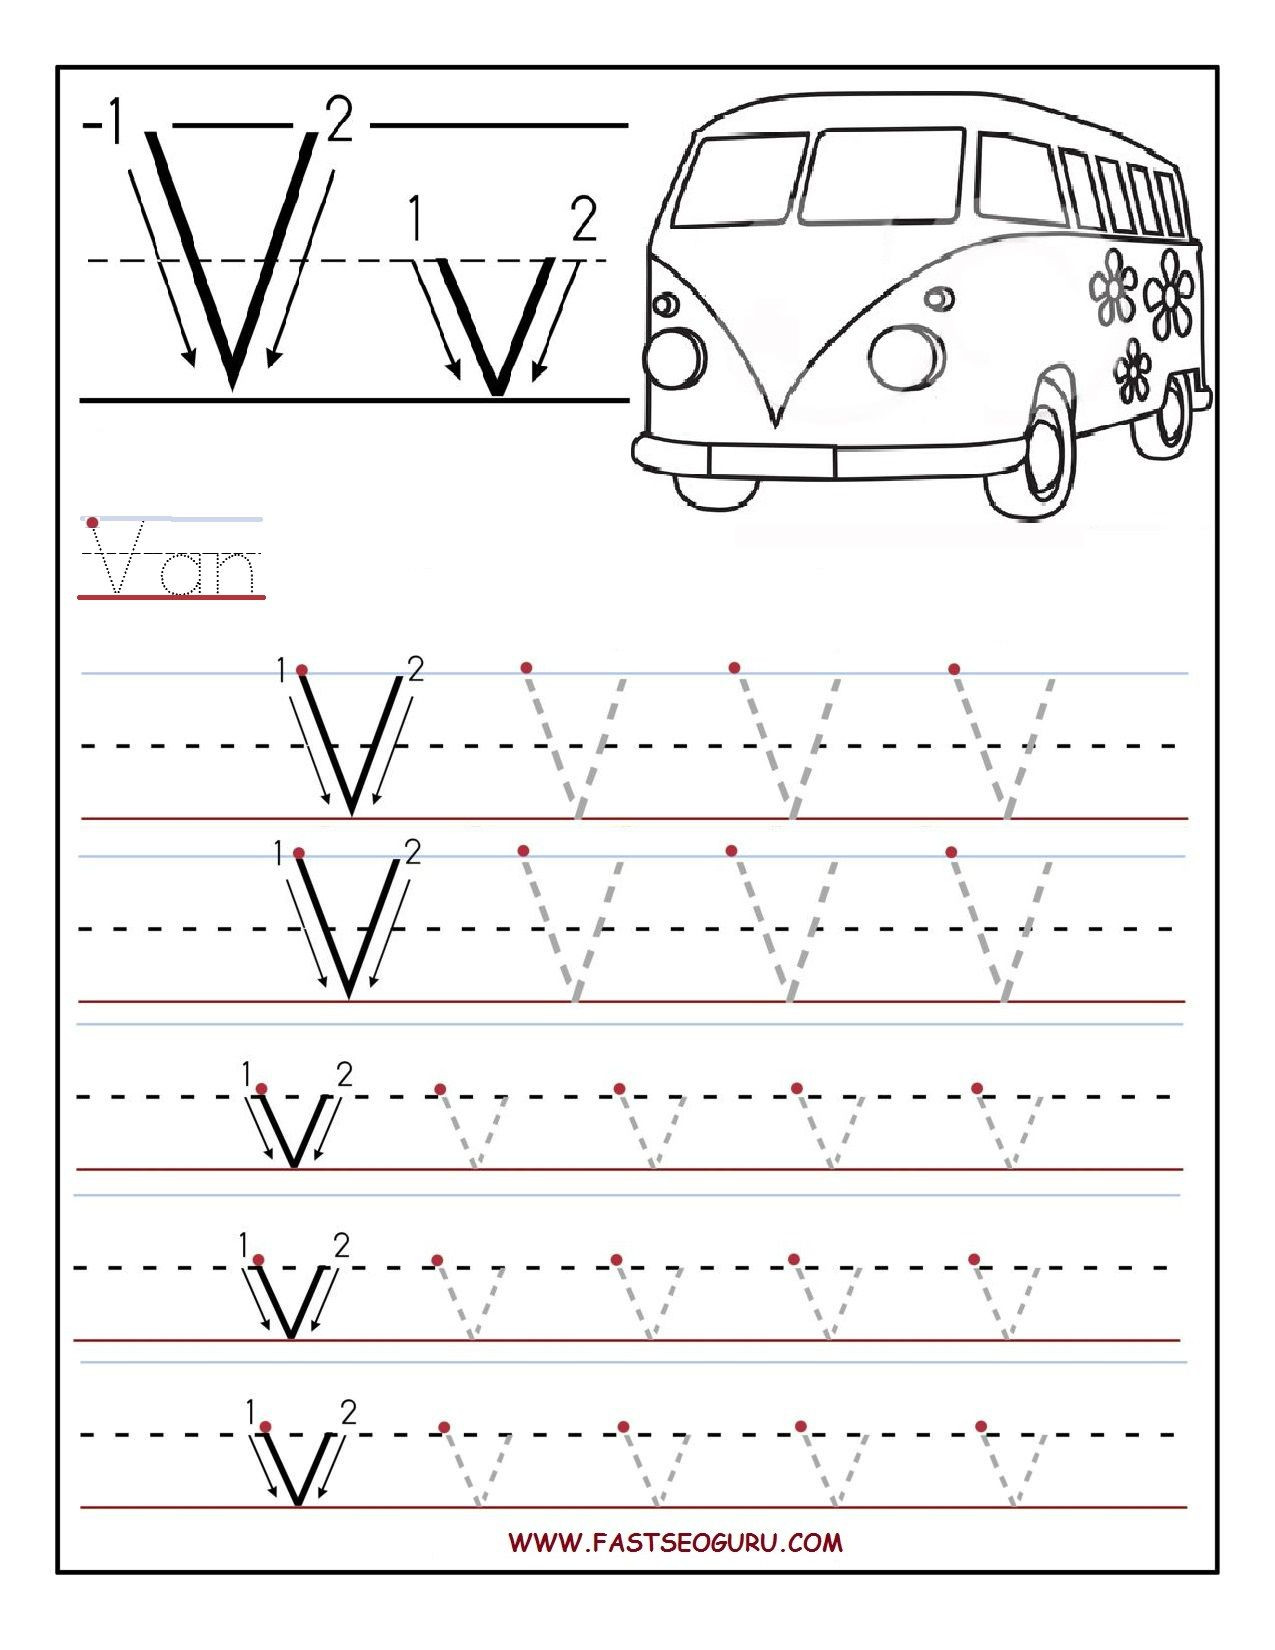 Letter V Worksheets Preschool Printable Letter V Tracing Worksheets for Preschool